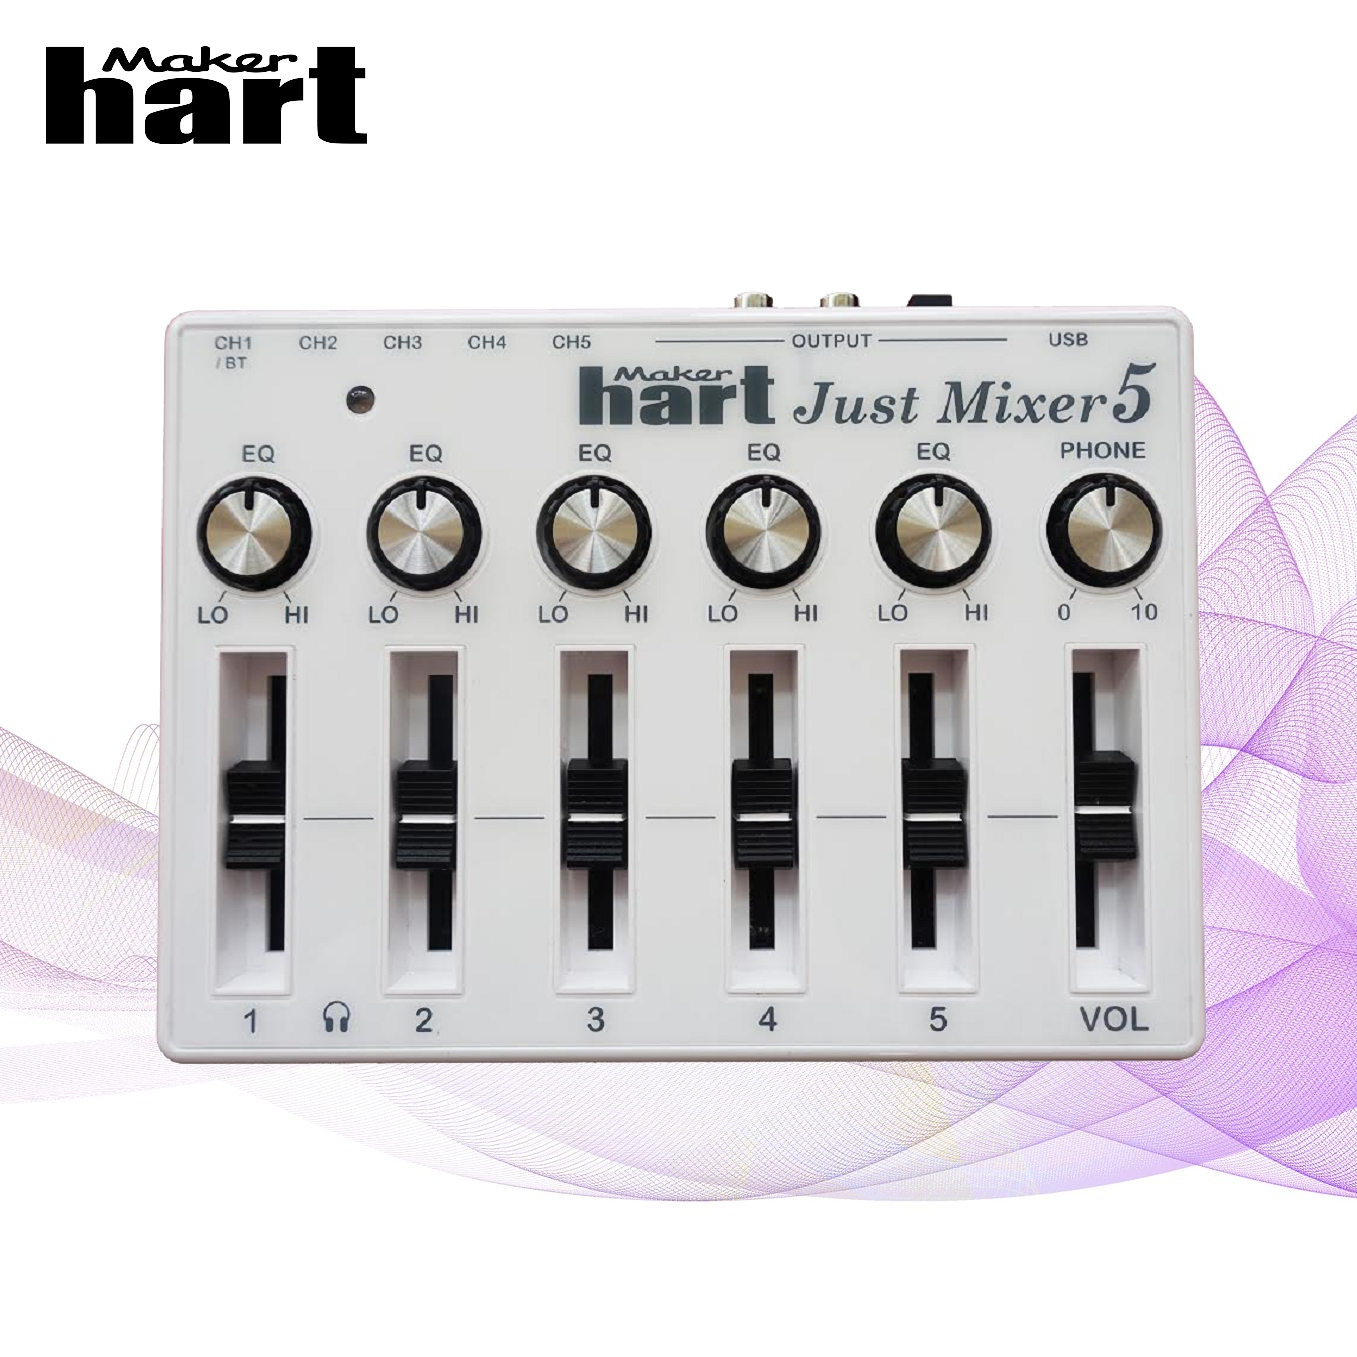 Taiwan Maker hart Orange Stereo Mixer Dj mini Mixer Audio